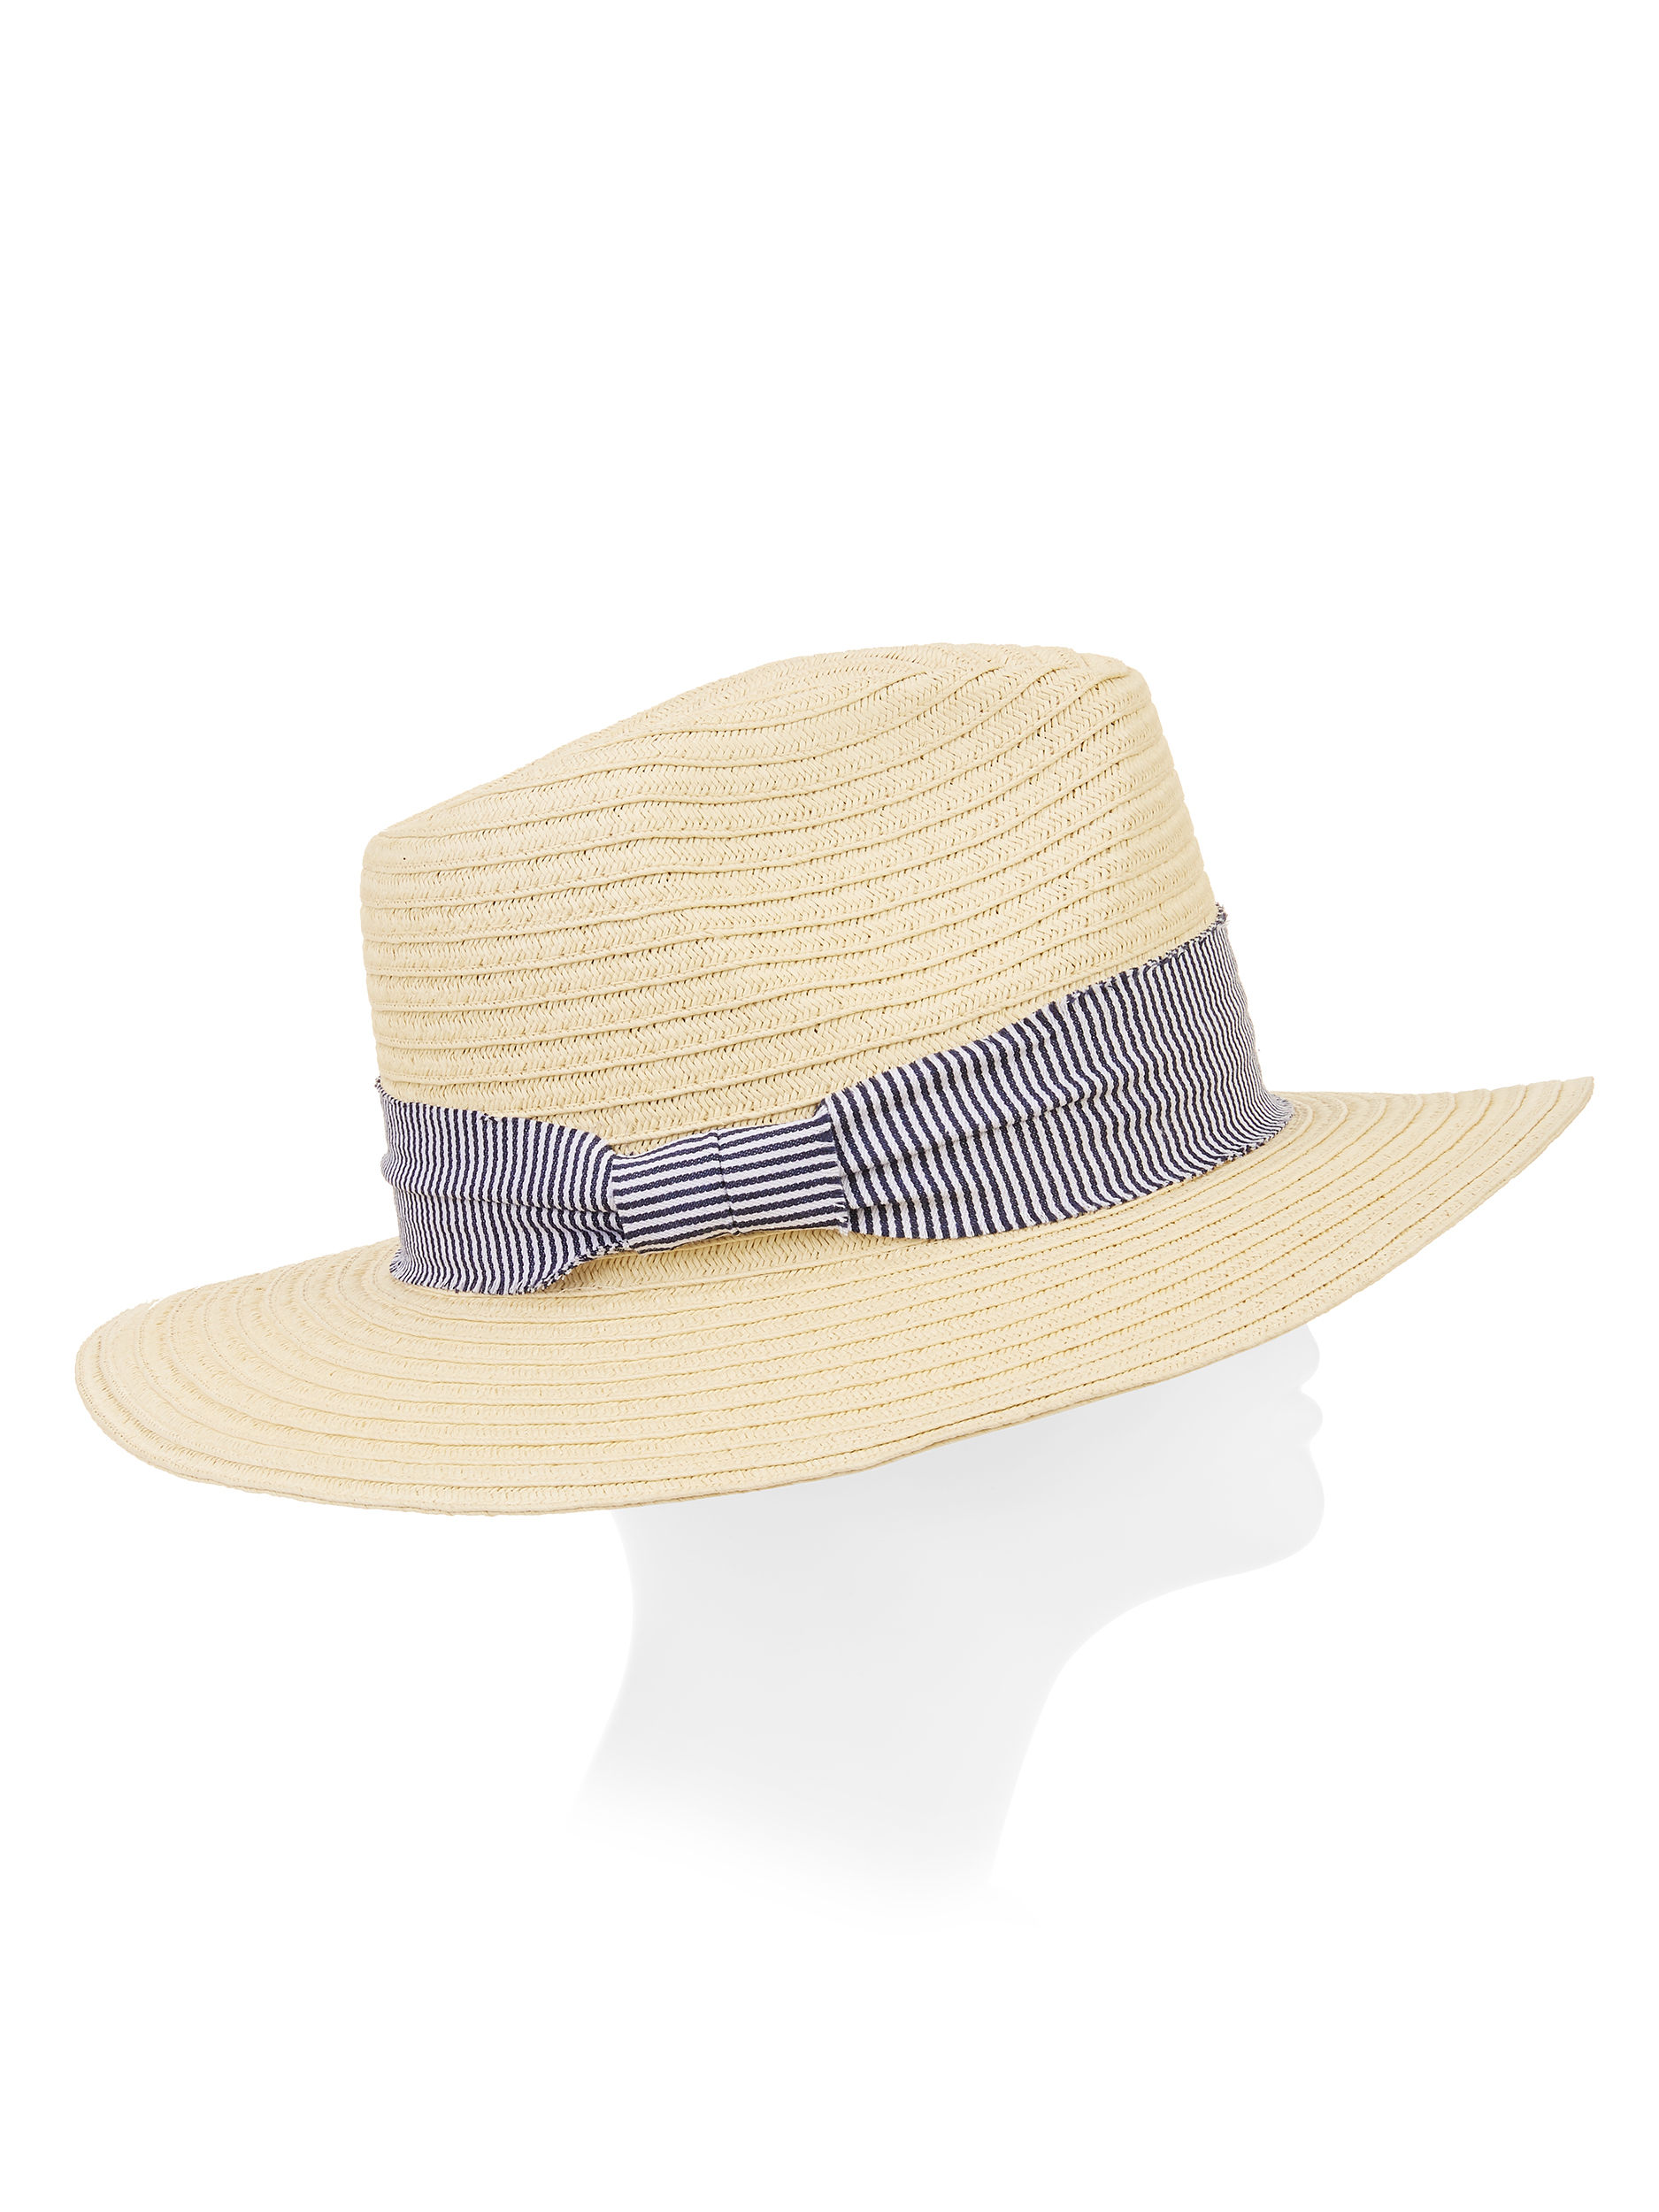 Eliza May Rose Women's Rancher Hat With Striped Fabric Detail